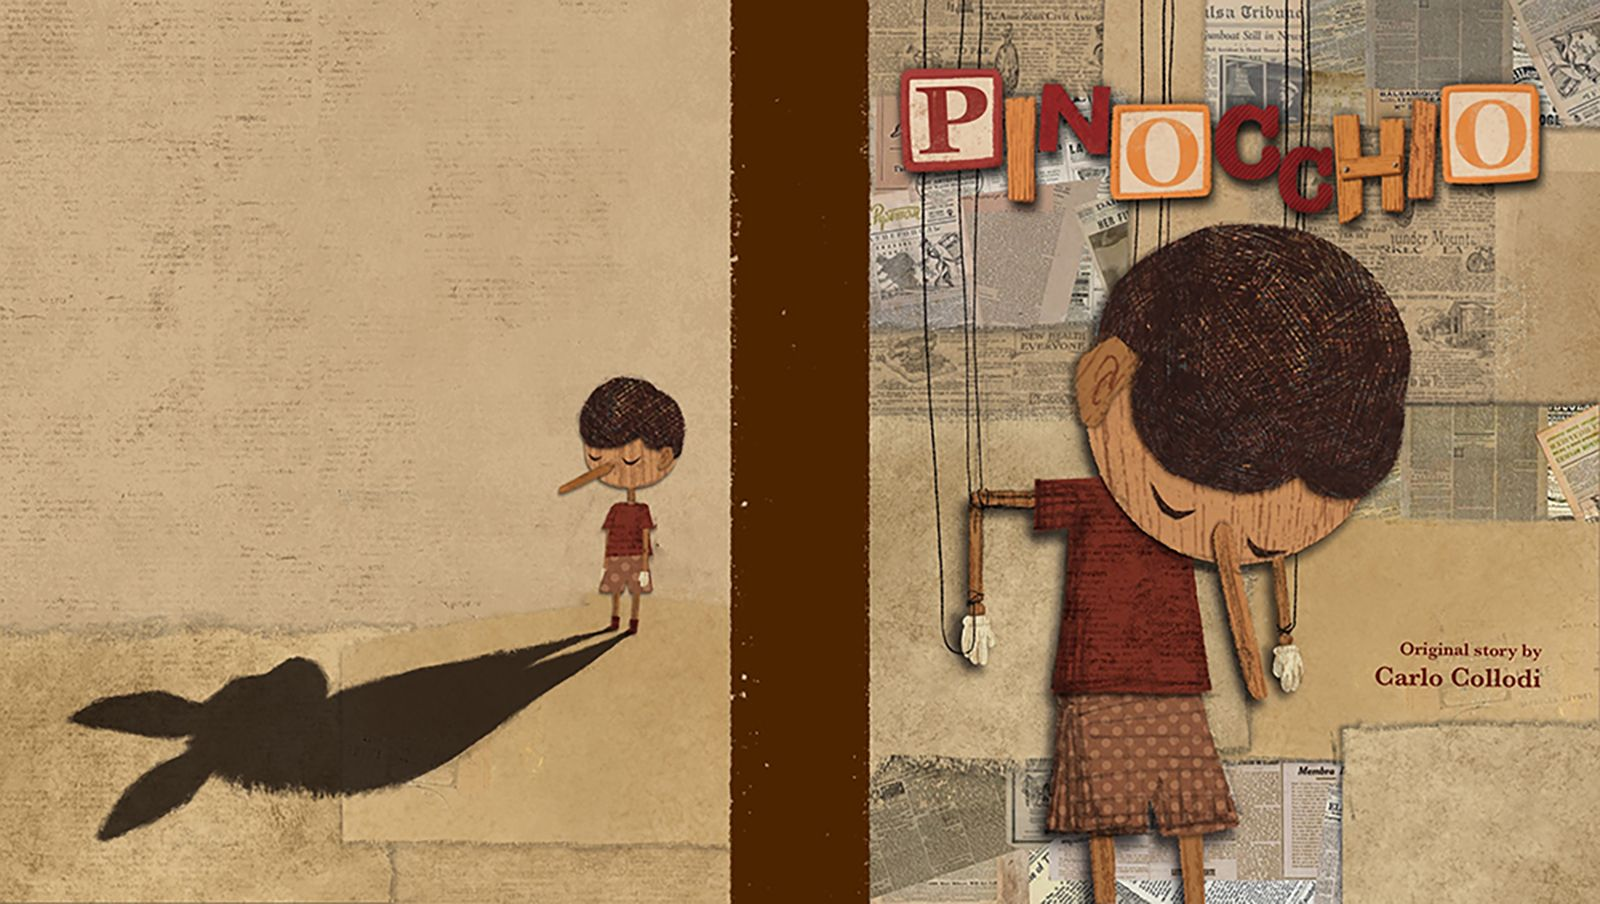 Pinocchio Book cover